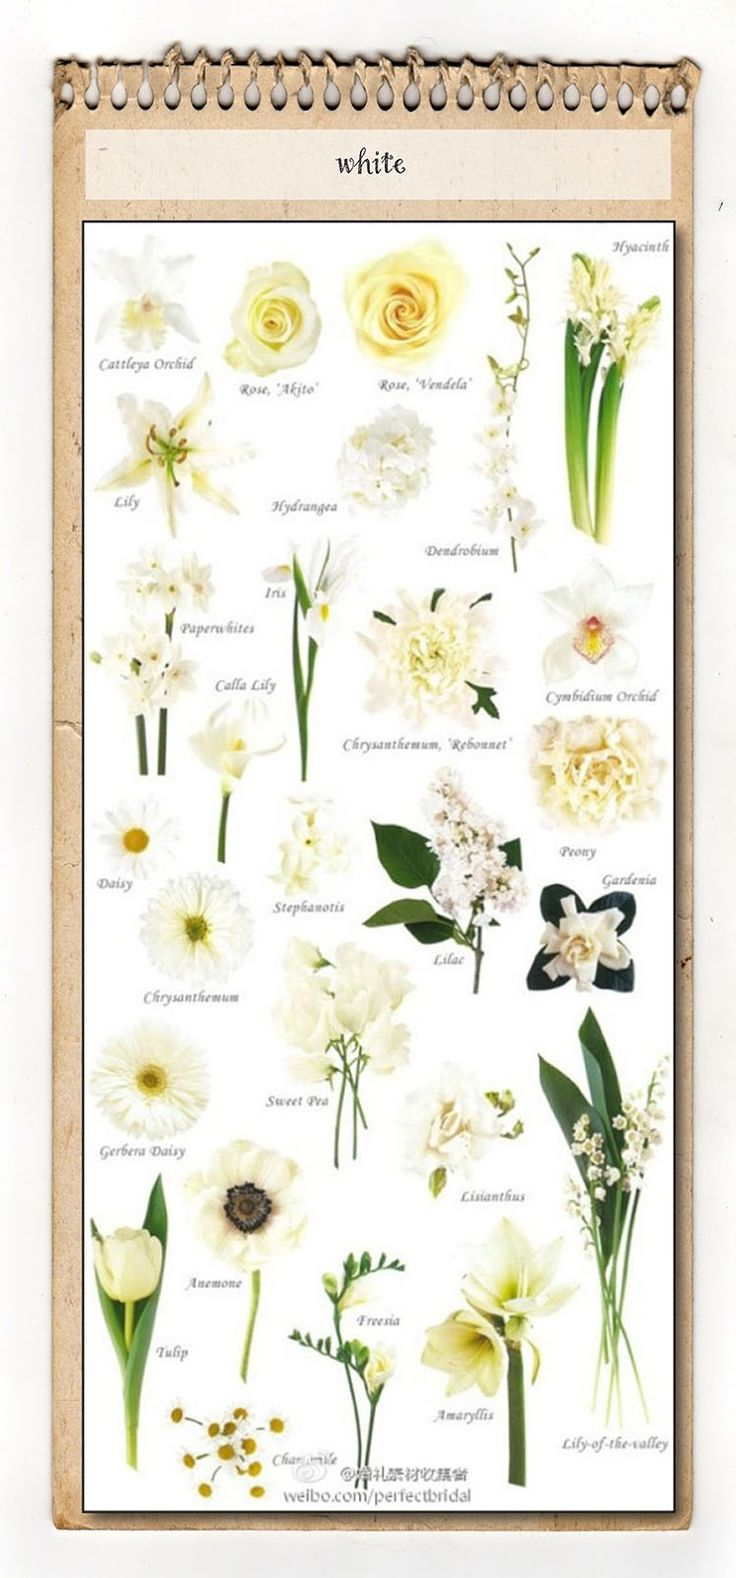 Names of white flowers for wedding 15 best images about flowers on pinterest orange flowers names of white mightylinksfo